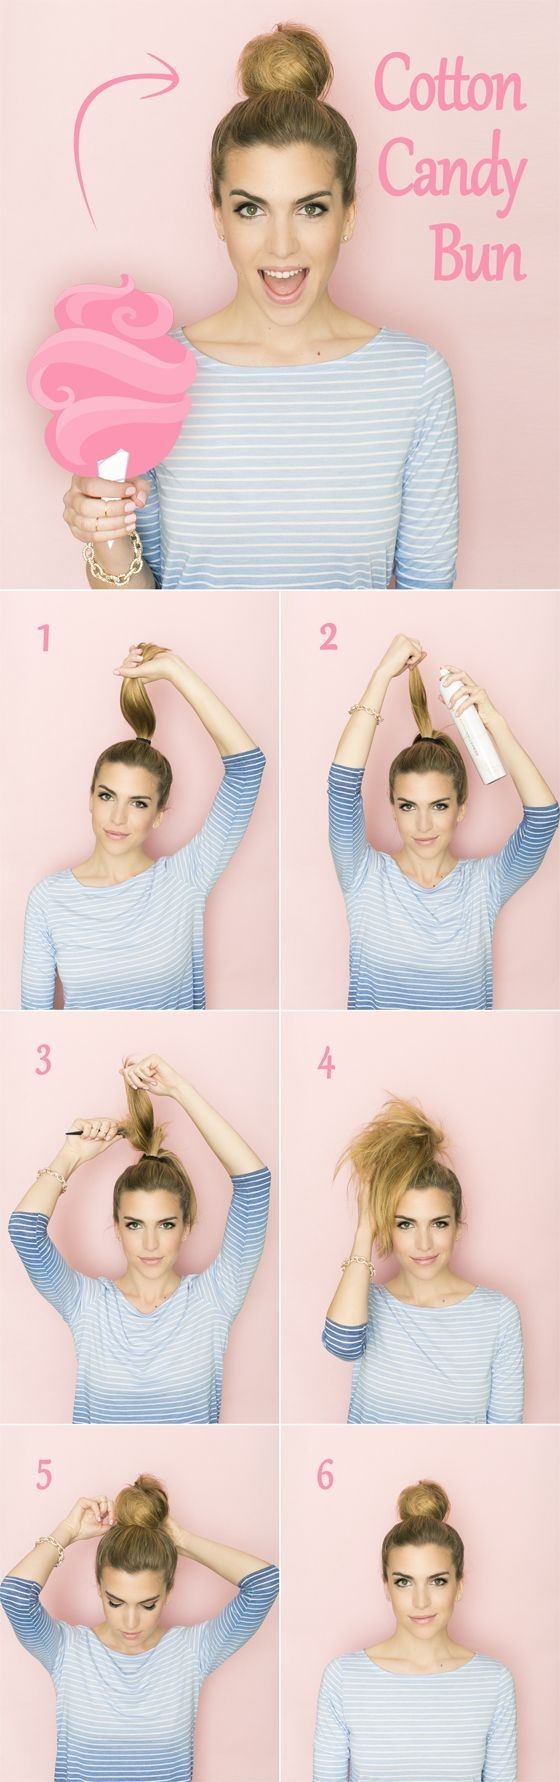 Cotton Candy Bun Tutorial: High Bun